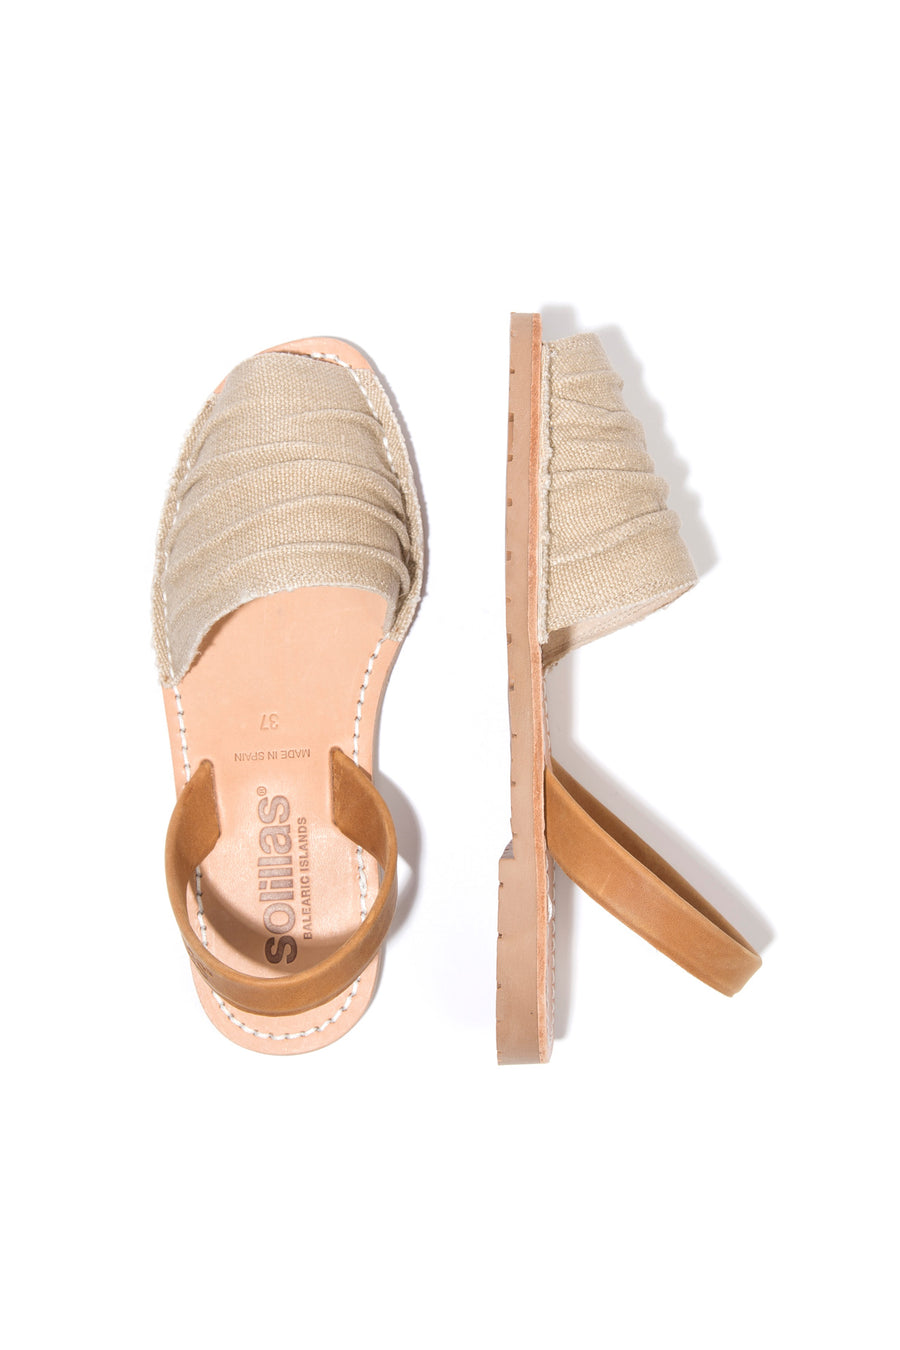 Alma - Ruffled Canvas Menorcan sandals